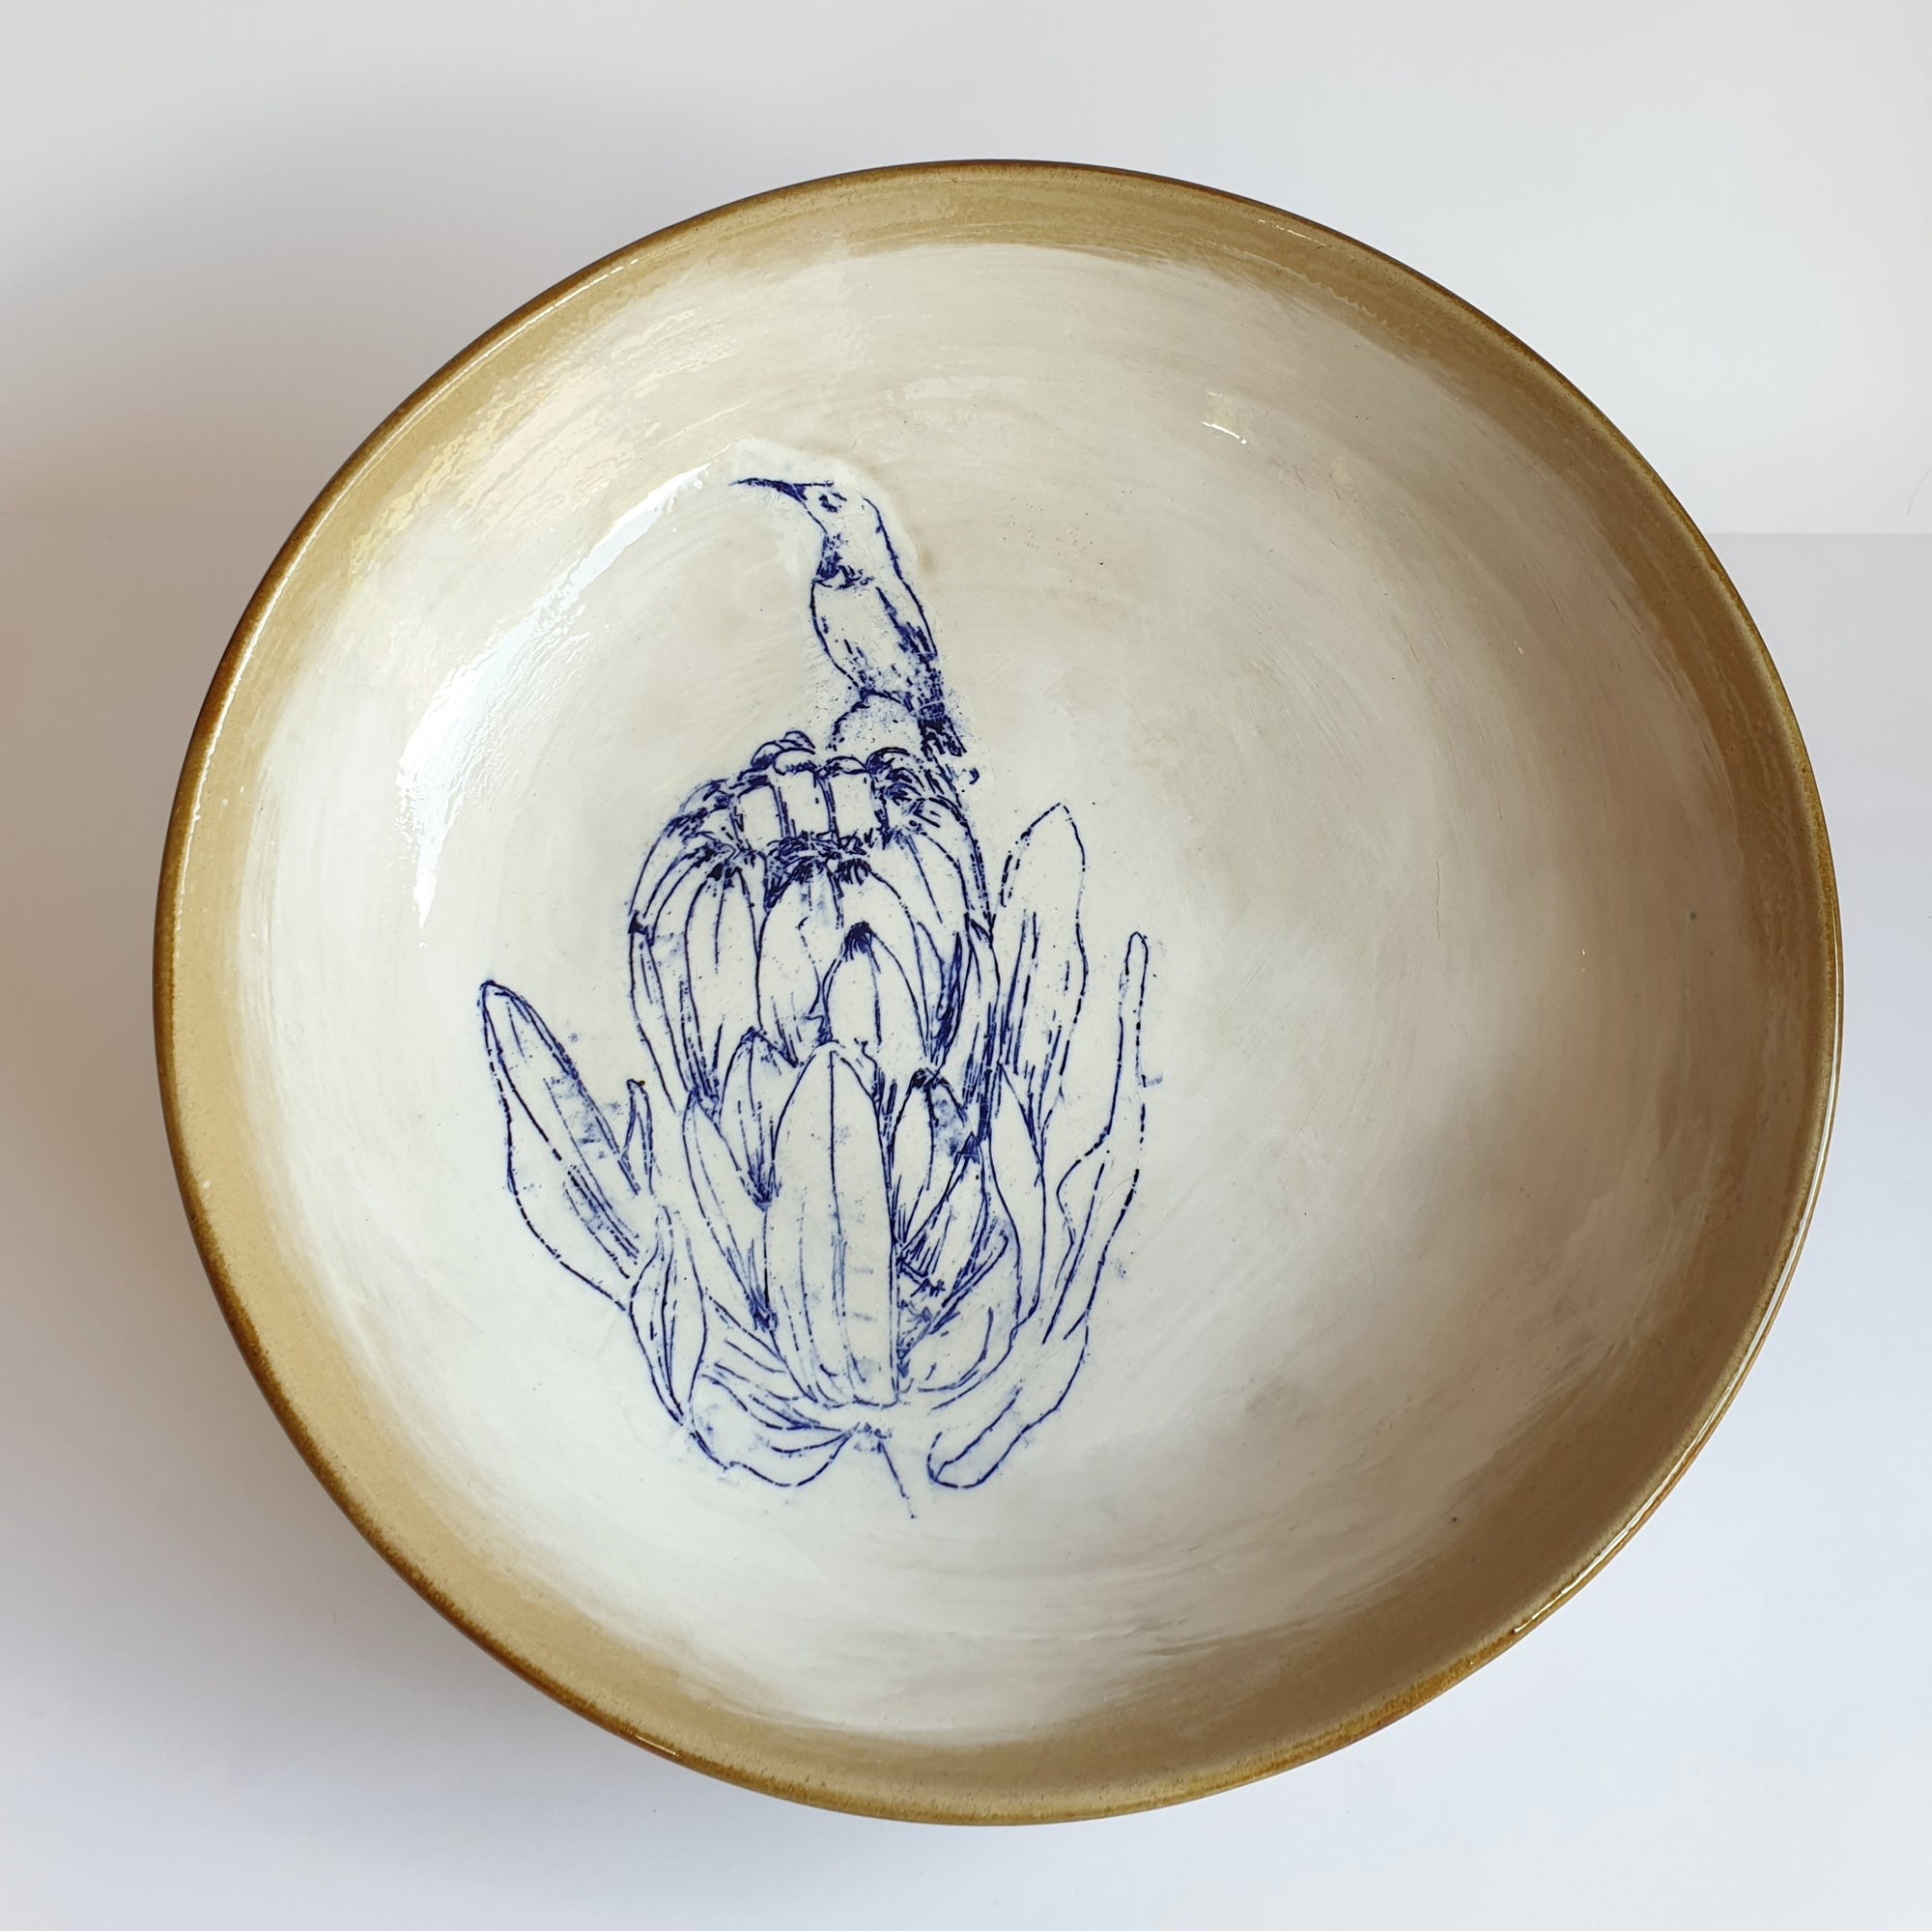 Cobalt blue Sunbird and Protea Platter (36cm diameter) - Nada Spencer Ceramics